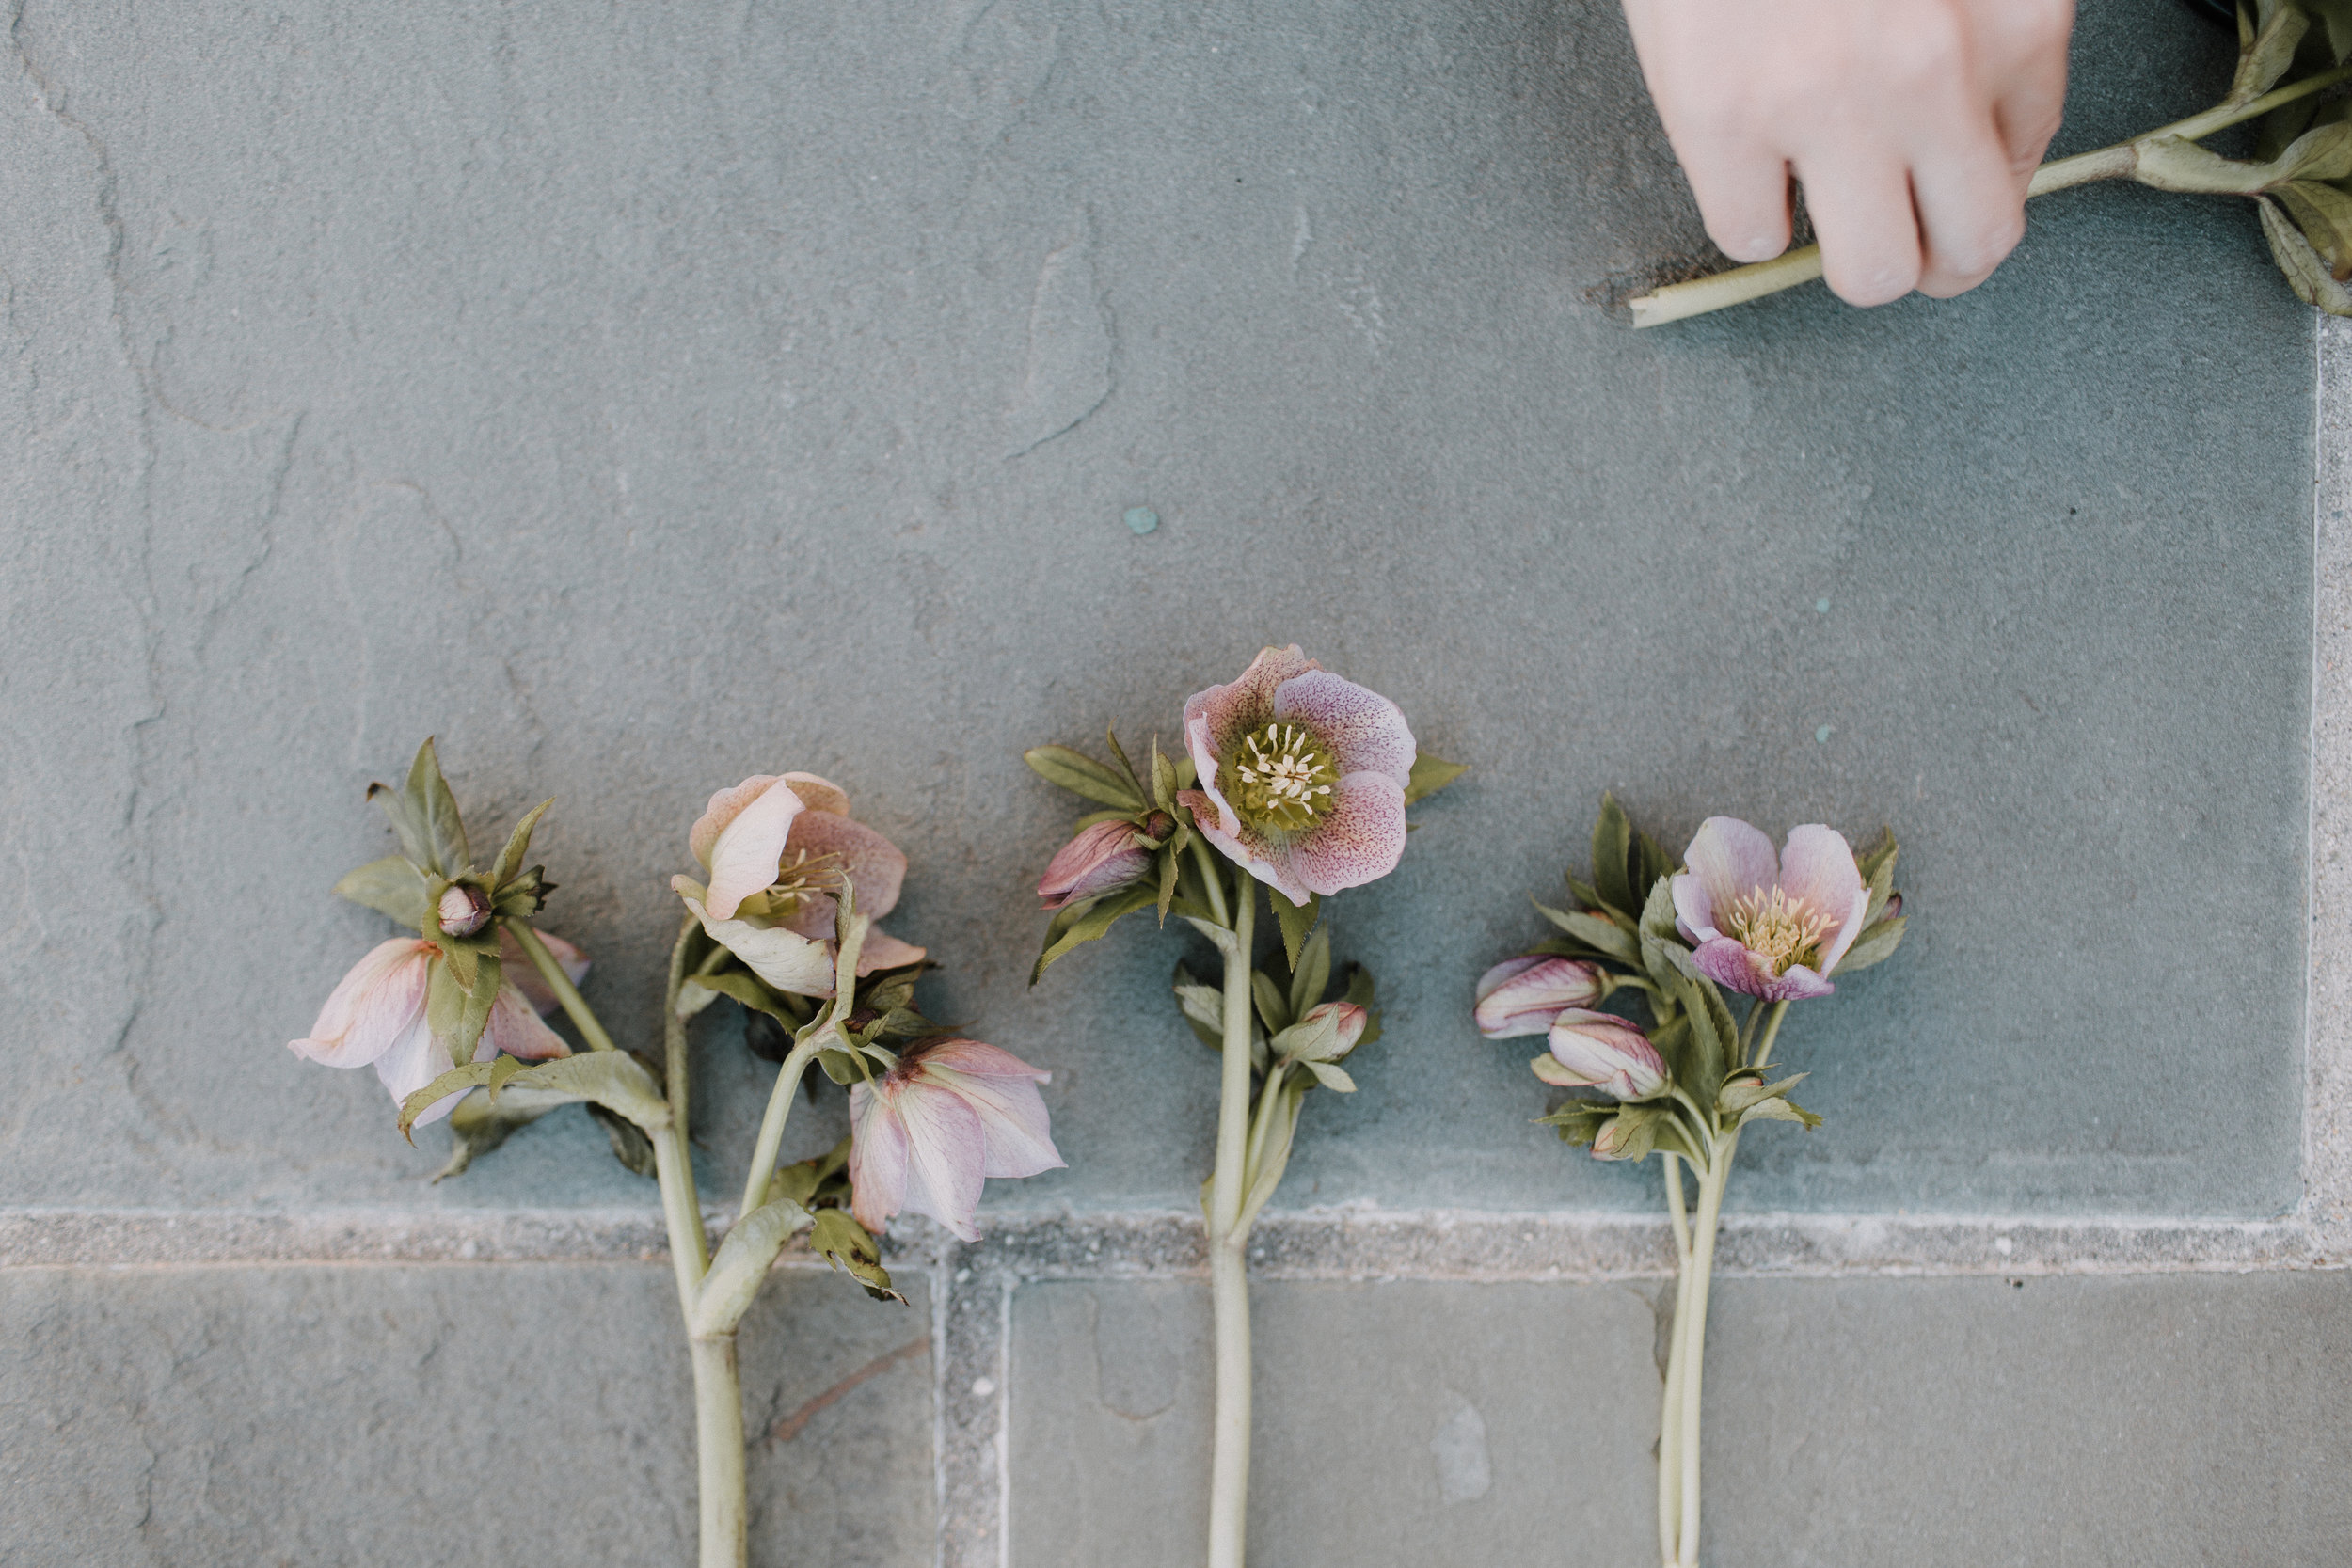 hellebore, Helleborus orientalis_Sophie + Co. florals for weddings and events in Washington, DC